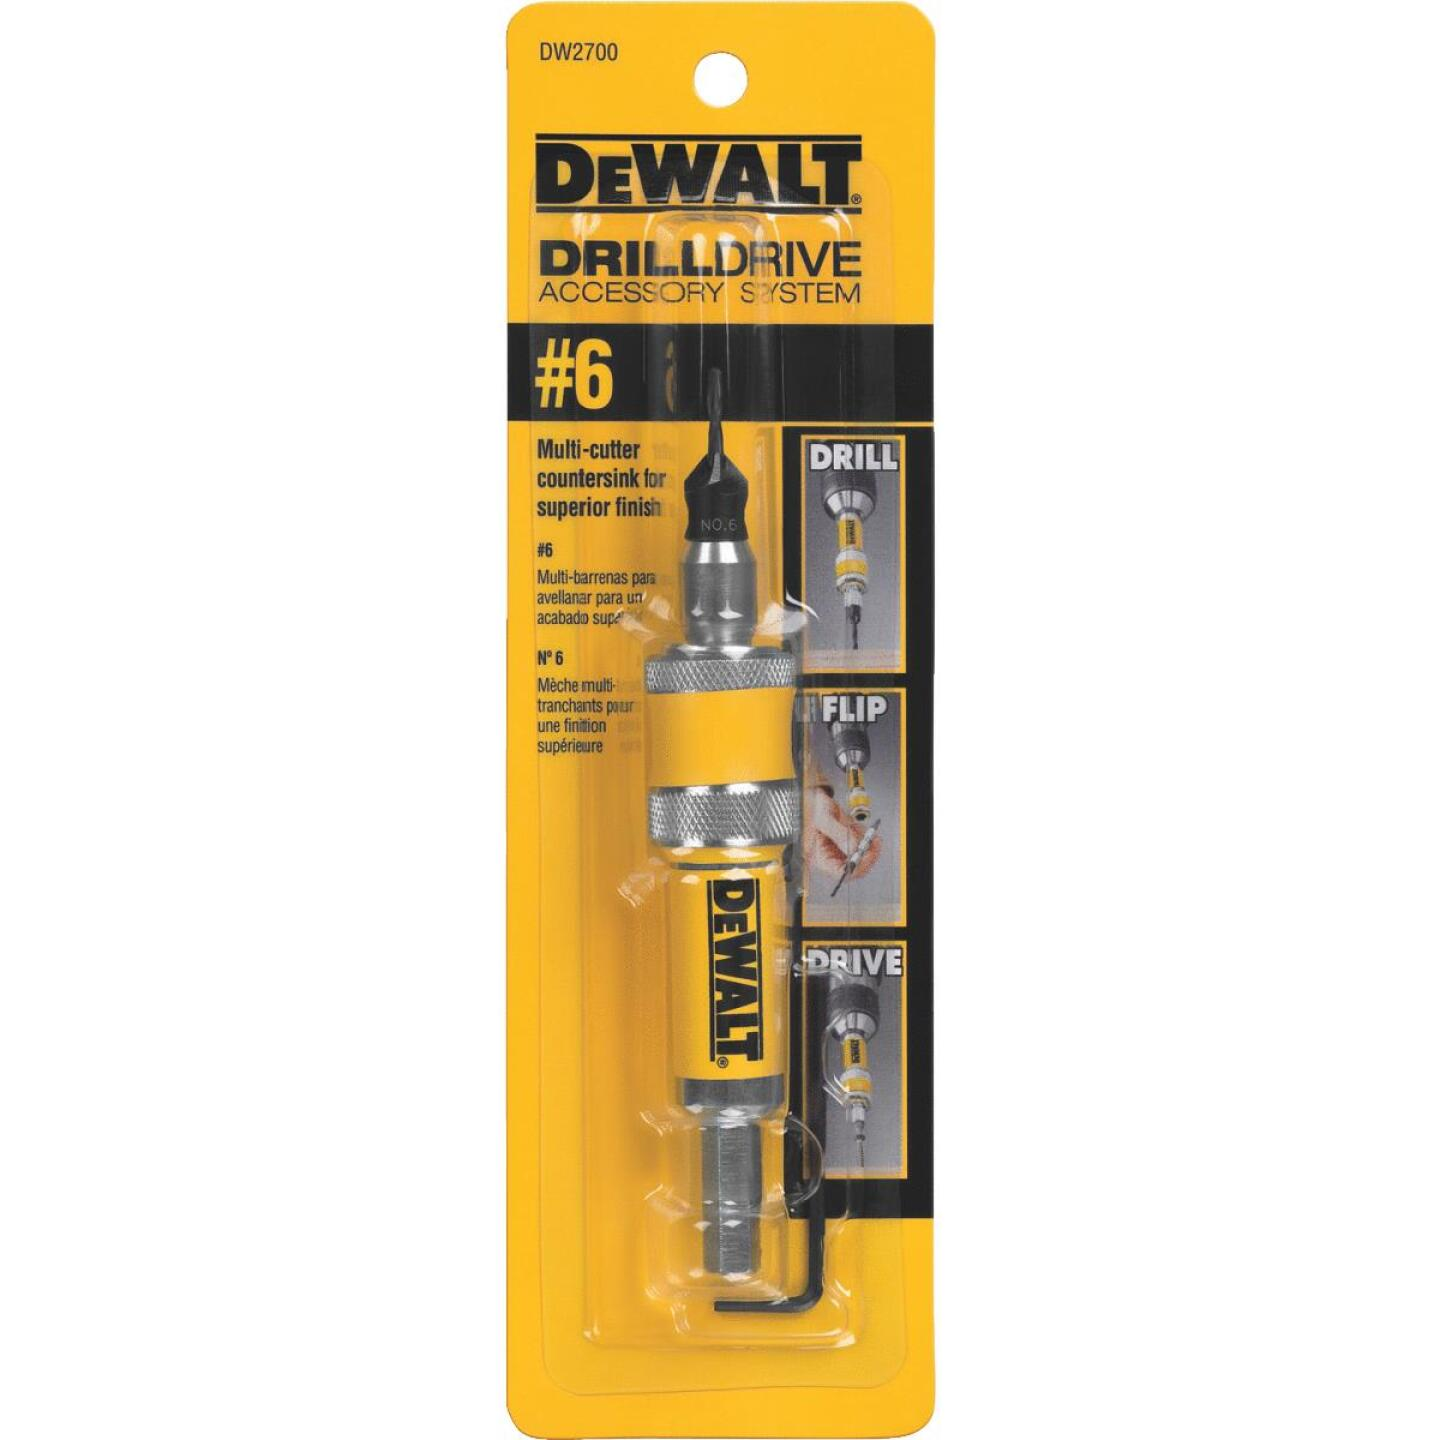 DeWalt #6 1/4 In. Black Oxide Drill & Drive Unit Image 3